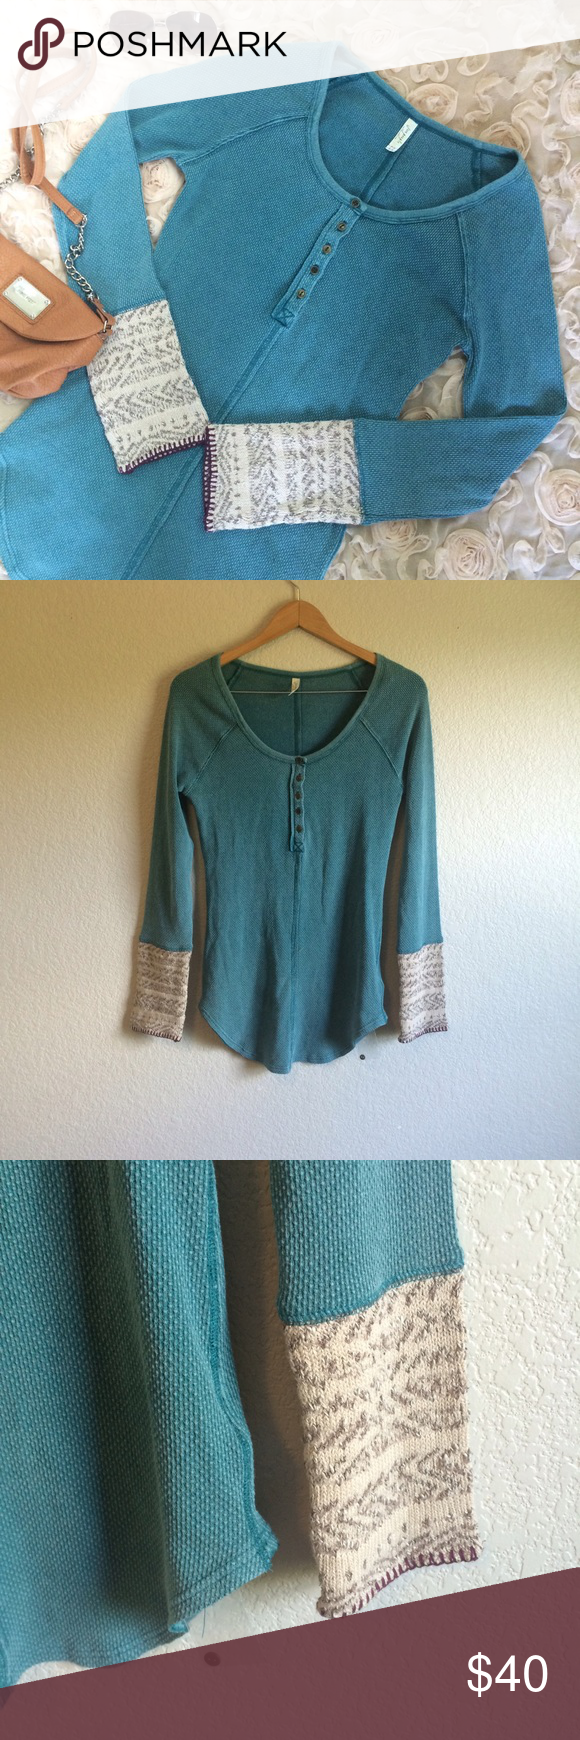 Free People • Top This Alpine Cuff thermal is in excellent condition (still has the extra button attached). Cozy and cute. Free People Tops Tees - Long Sleeve